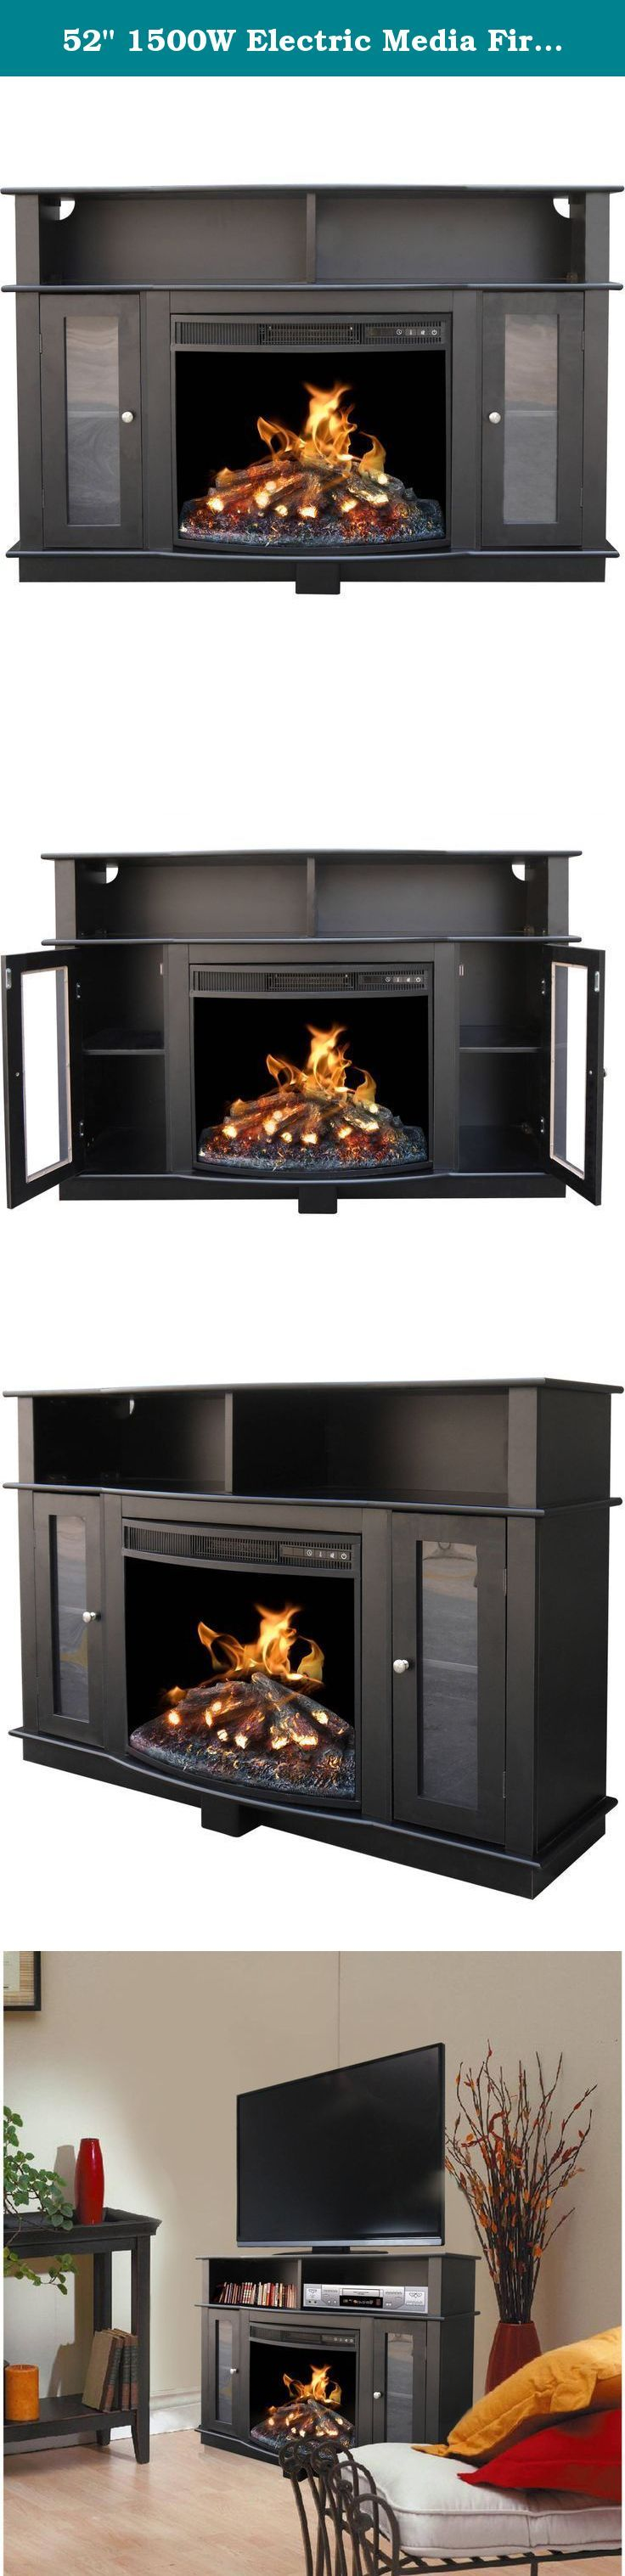 """52"""" 1500W Electric Media Fireplace TV Stand with LED Light, Remote Control, and Timer. This 52"""" Décor Flame Media Unit Fireplace Mantle is for TVs up to 60 inches. It is a 1500W unit that heats 325 square feet to keep you feeling cozy during the winter. It has a remote control, 6 hour timer, and fire adjustment. This classy black TV stand with fireplace unit is the perfect living room unit. Model# MM277-52EBK Televisions sold separately. ."""